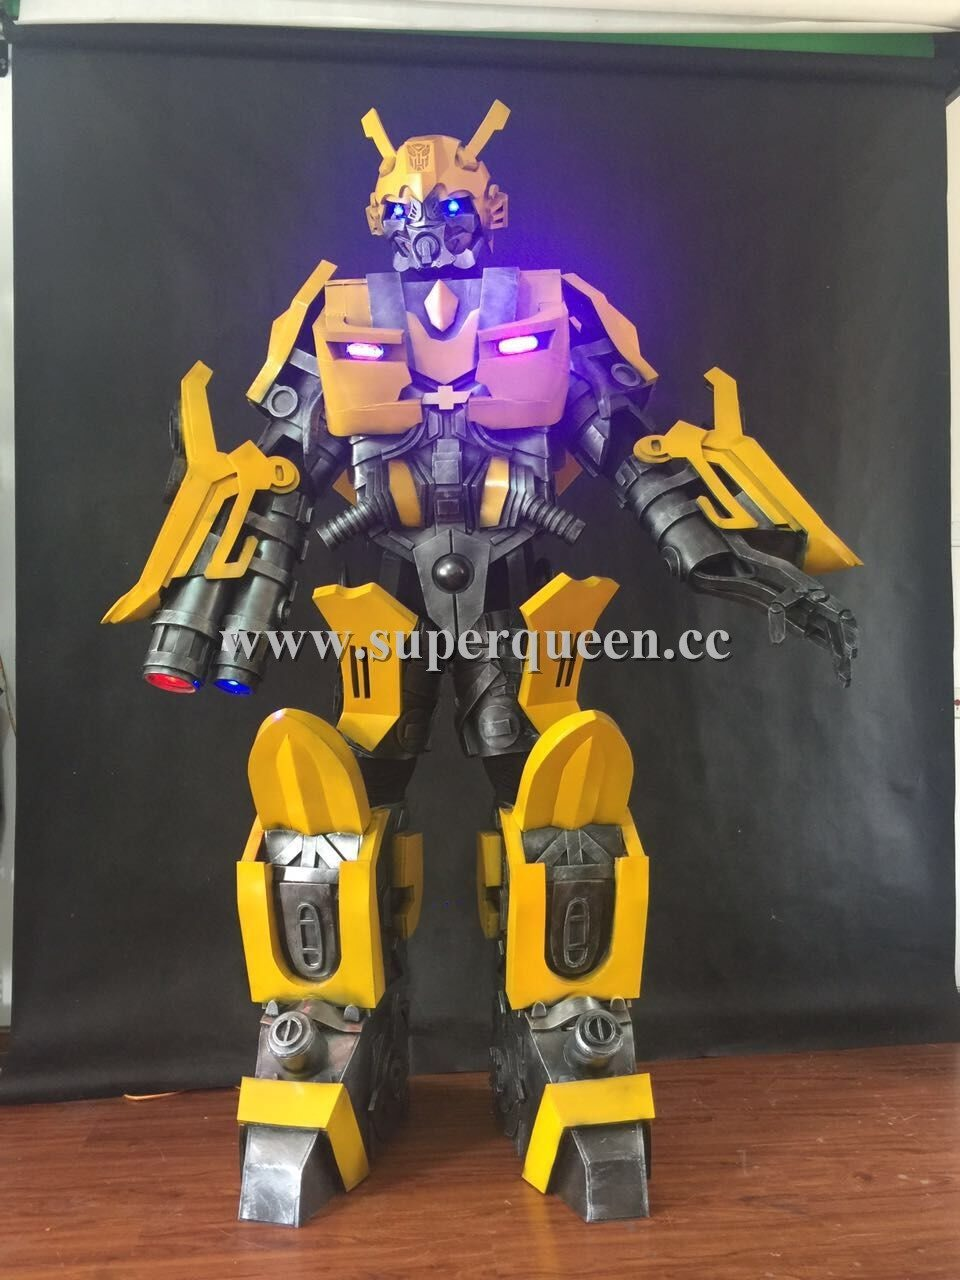 Robot Bumblebee costume for party